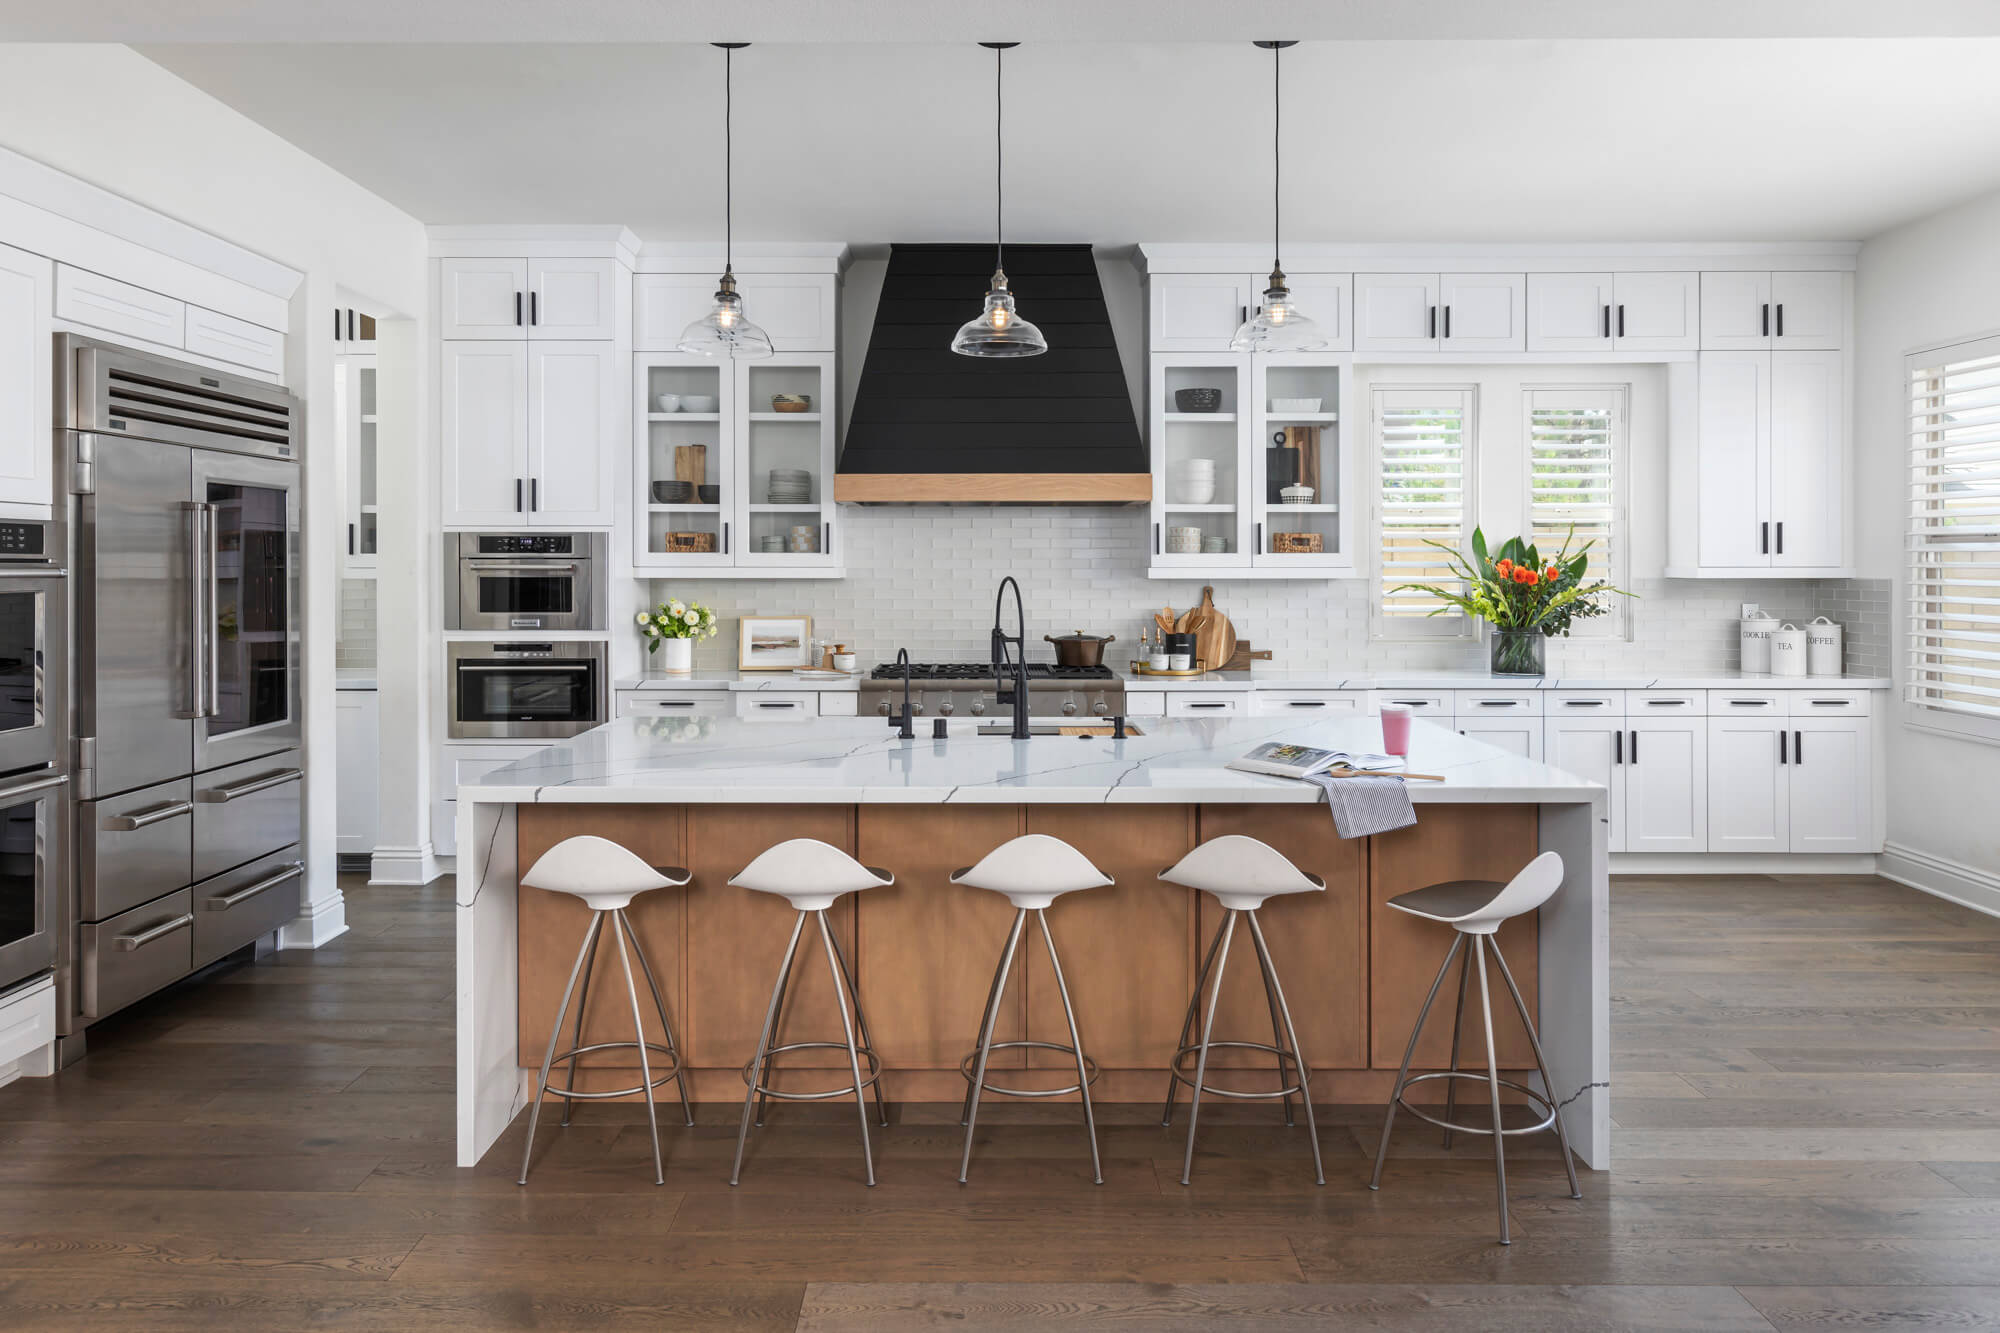 Kitchen remodel featuring stunning kitchen island.